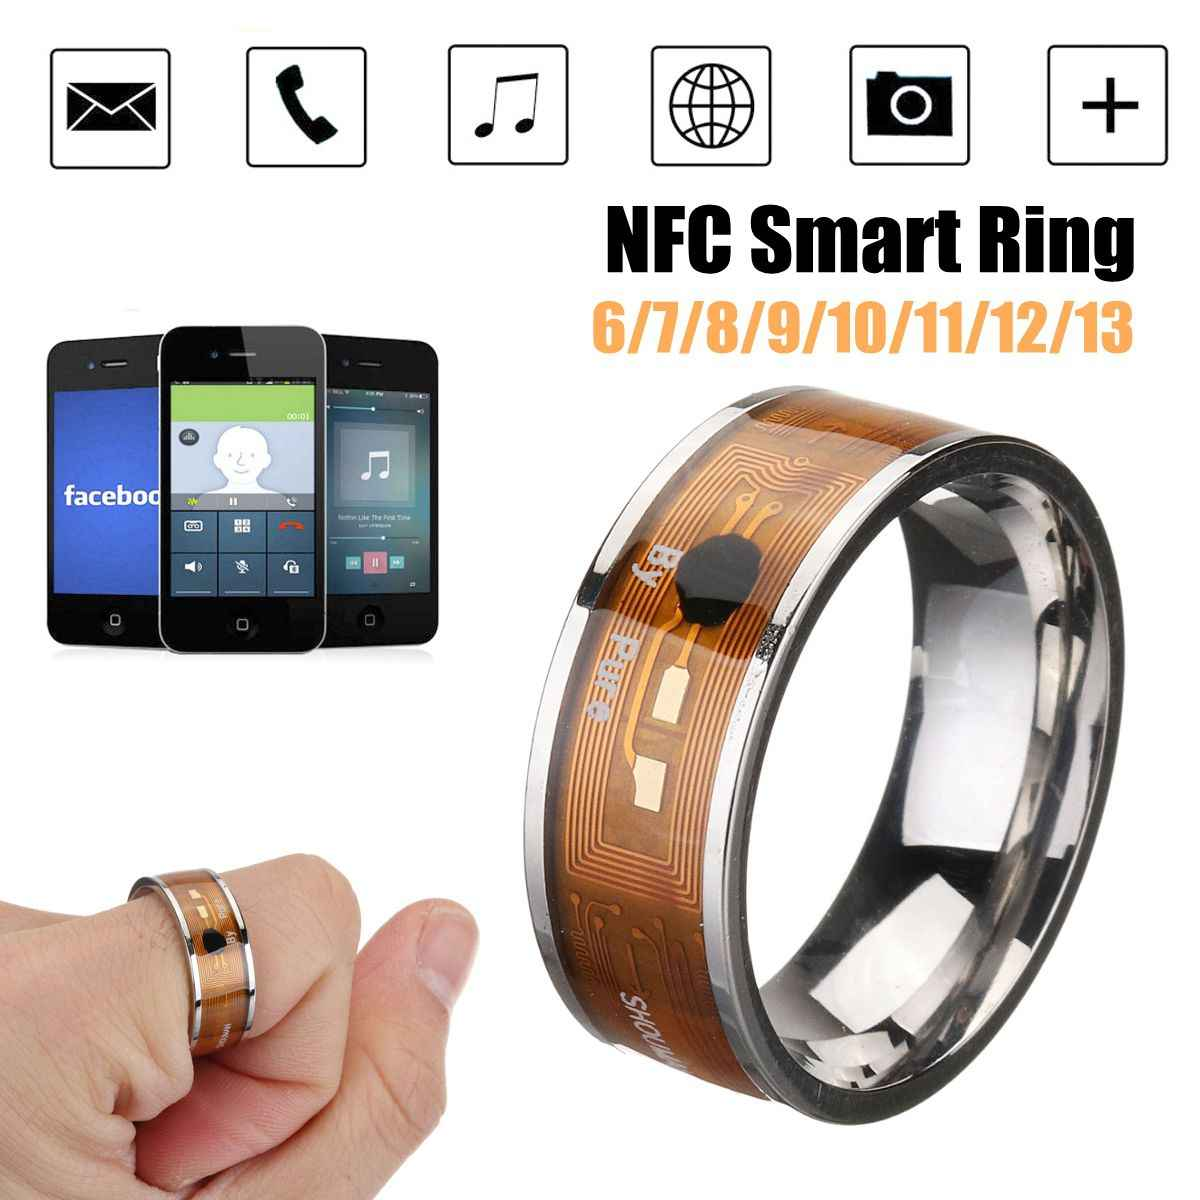 Baru NFC Smart Cincin Multifungsi Tahan Air Cerdas Magic Smart Wear Jari Digital Cincin untuk Android Windows Mobile NFC